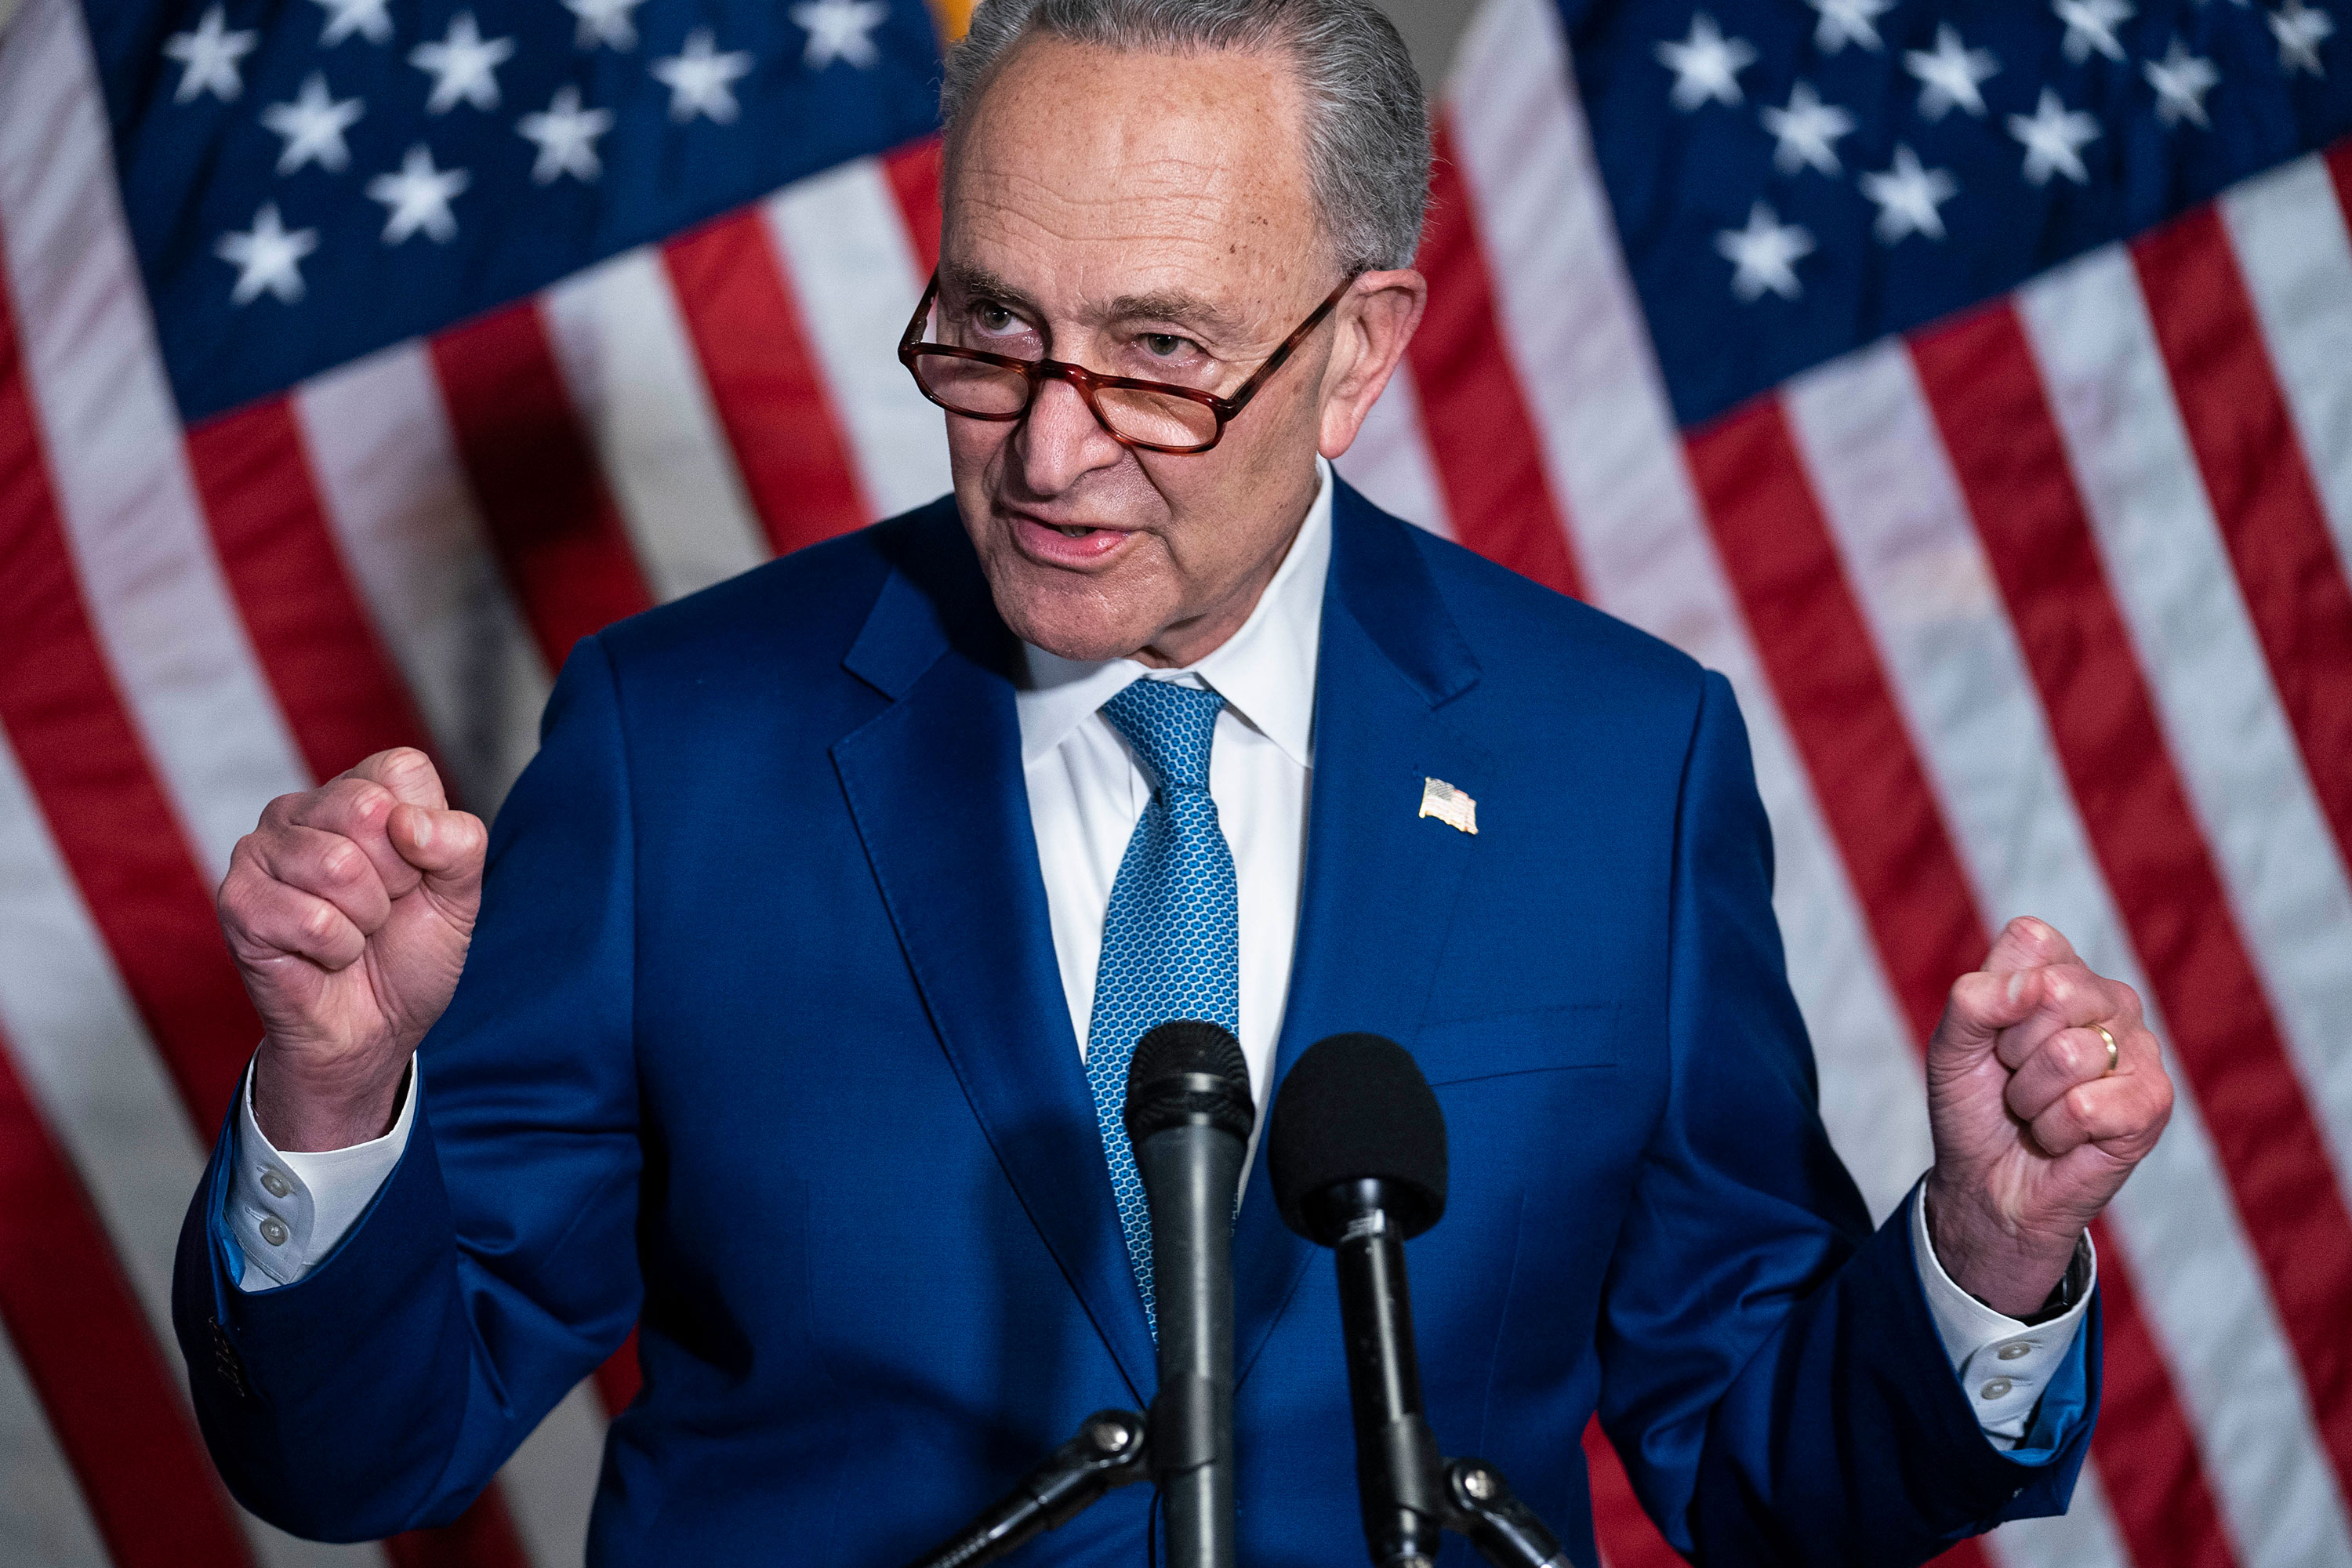 Senate Majority Leader Chuck Schumer speaks during a news conference on April 20.